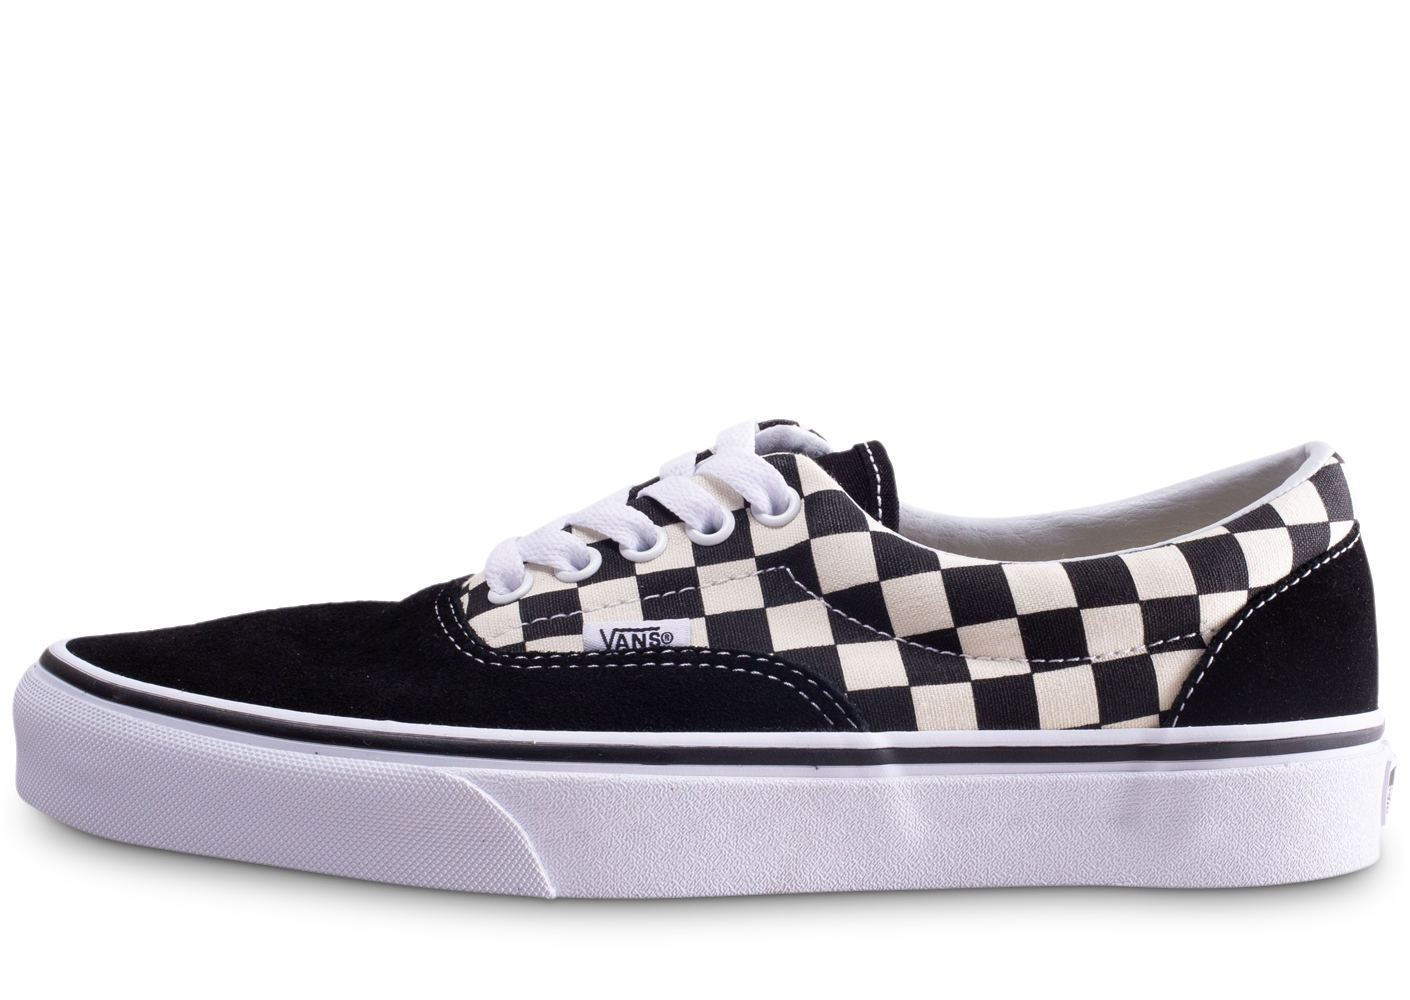 Vans pour Homme Pureshopping